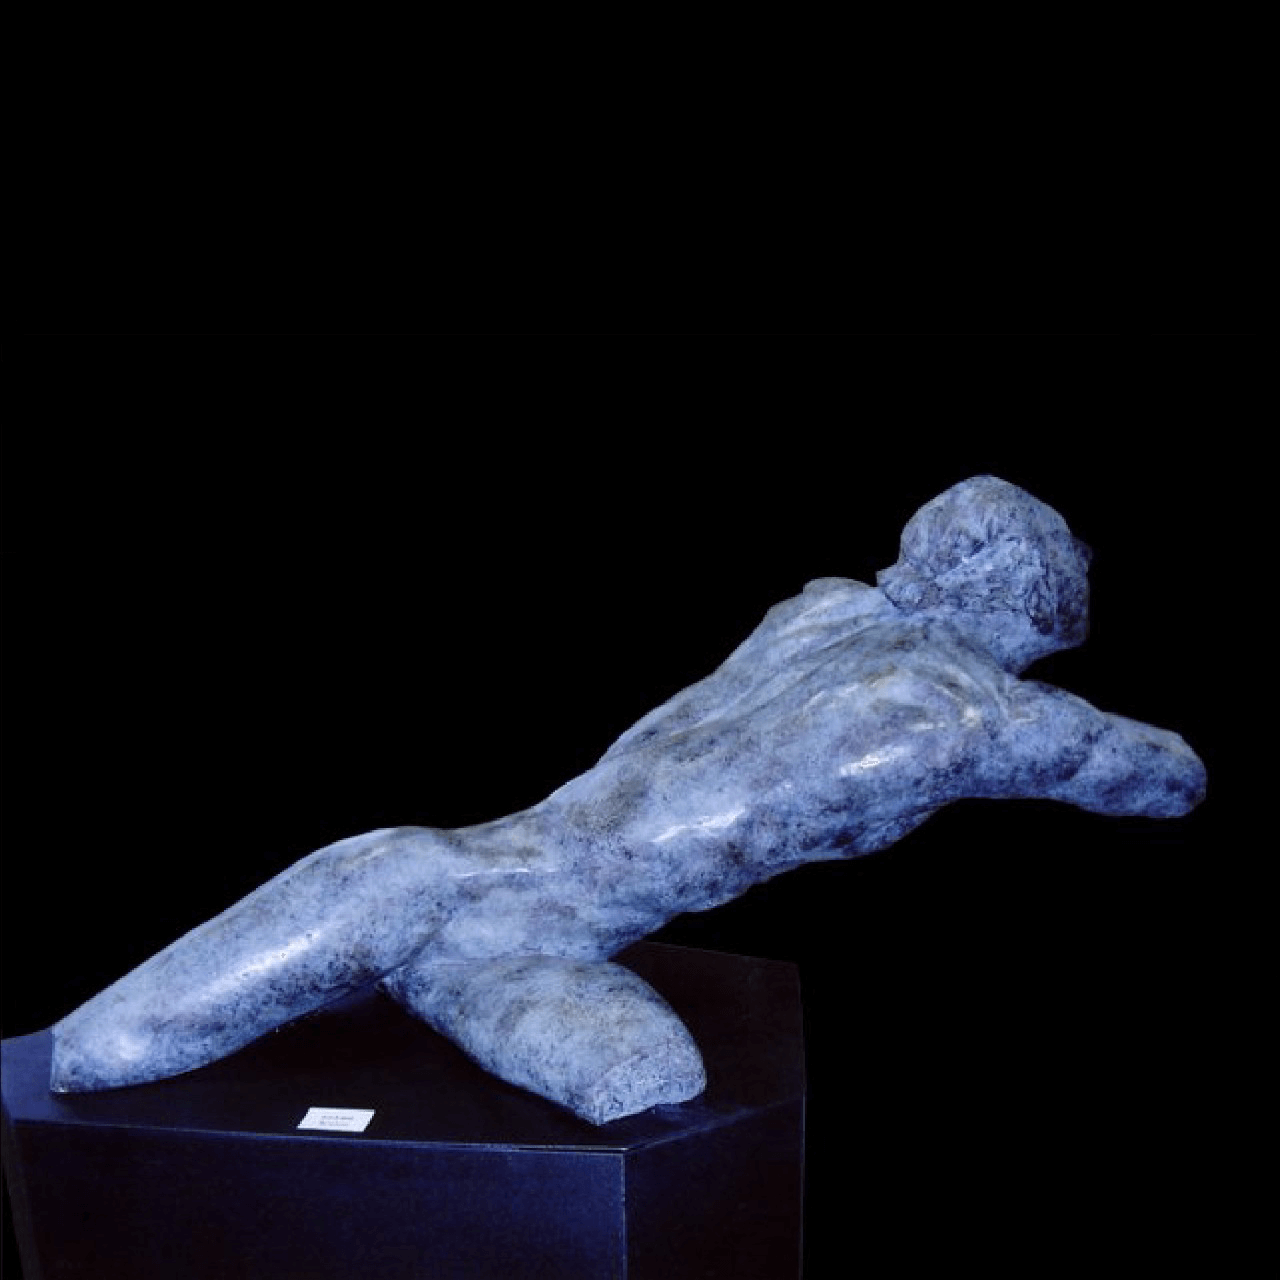 mario pavesi italian sculptur painter male body